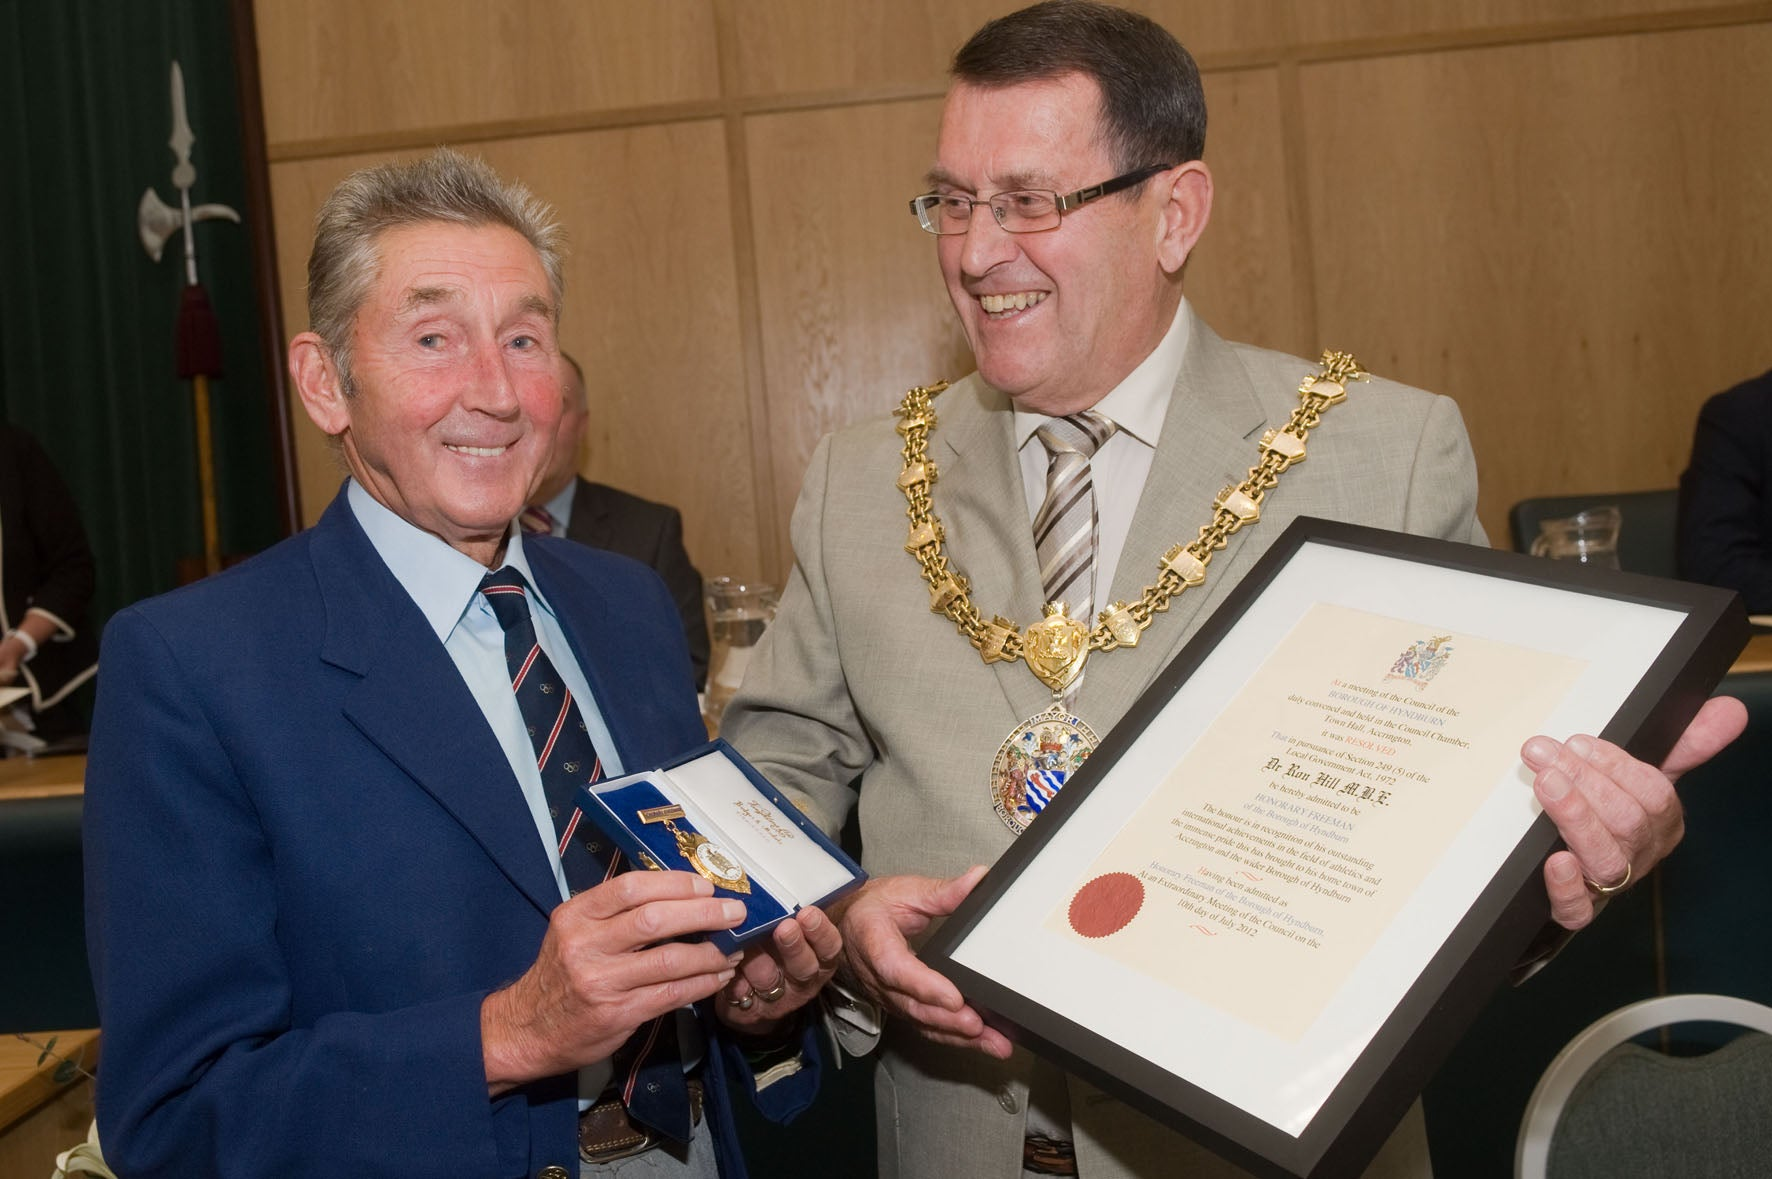 Ron Hill MBE becomes a Freeman of the Borough of Hyndburn